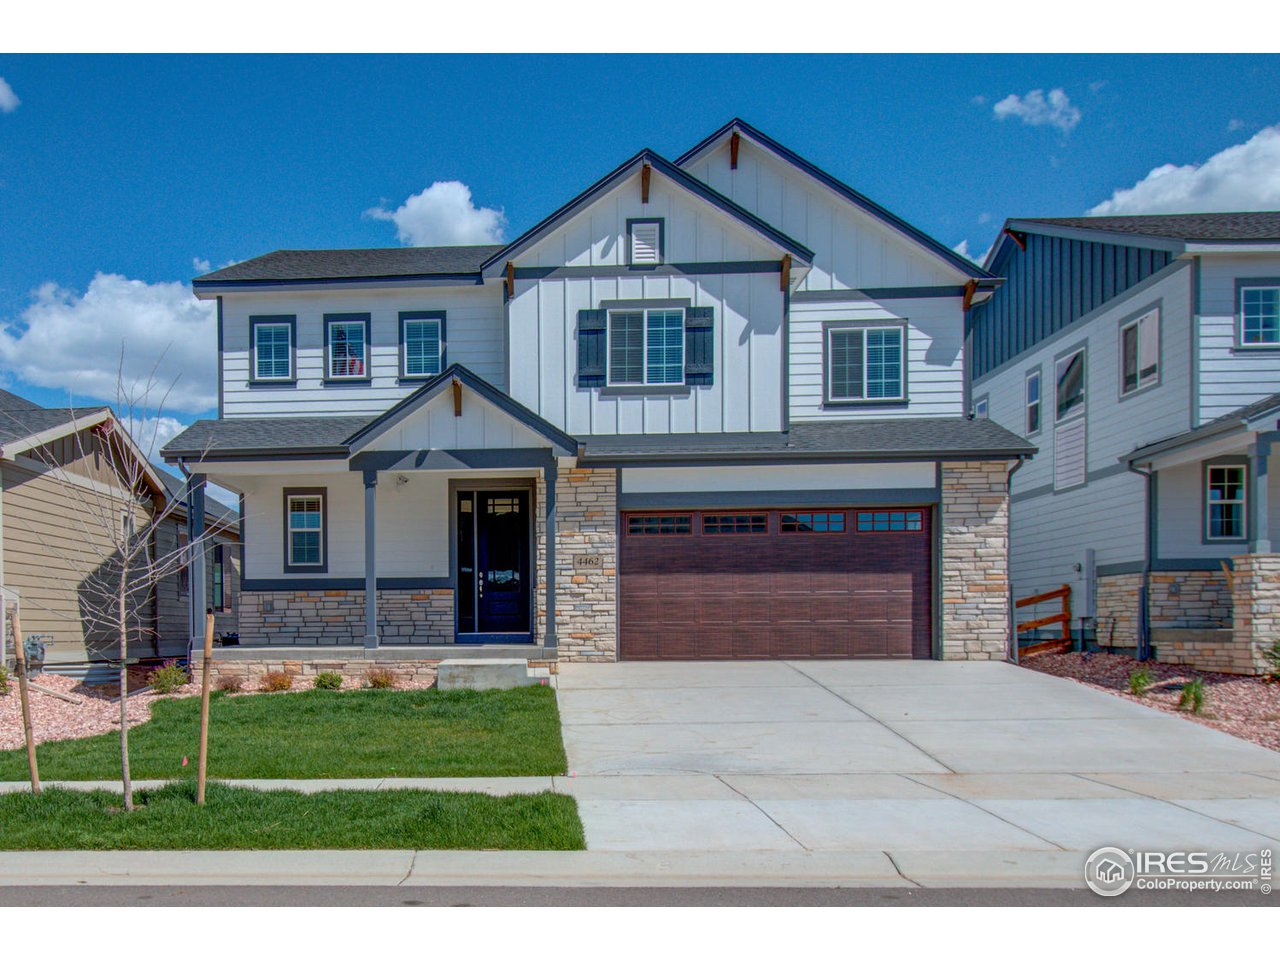 4462 Fox Grove Dr, Fort Collins CO 80524